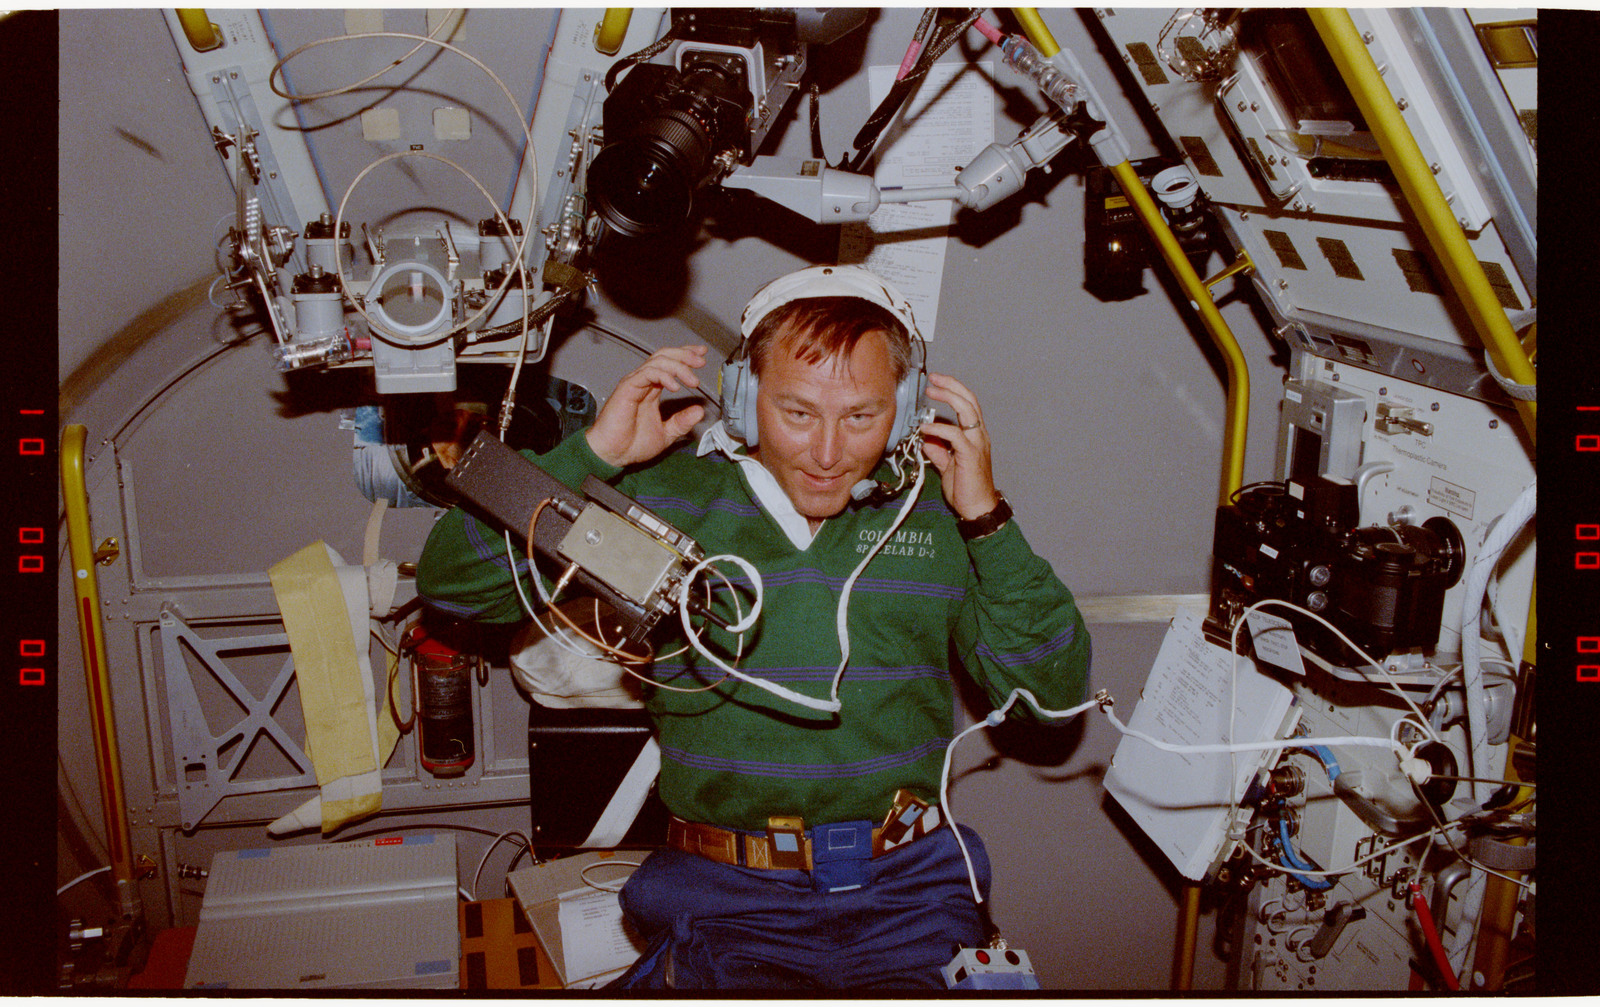 STS055-203-030 - STS-055 - Crewmember in the D-2 Spacelab with Shuttle Amateur Radio Experiment II.